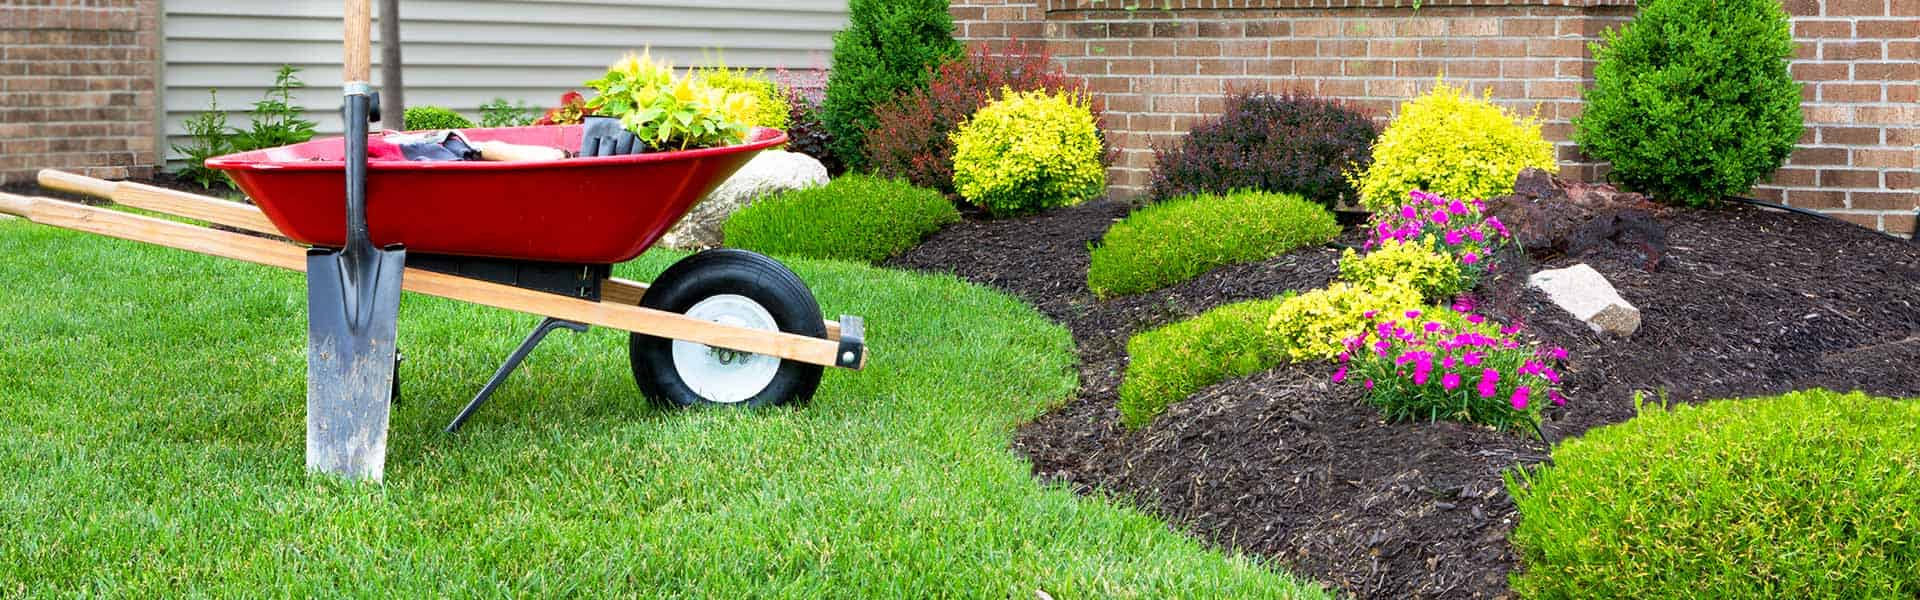 Get the best gardening help because we have the experience!